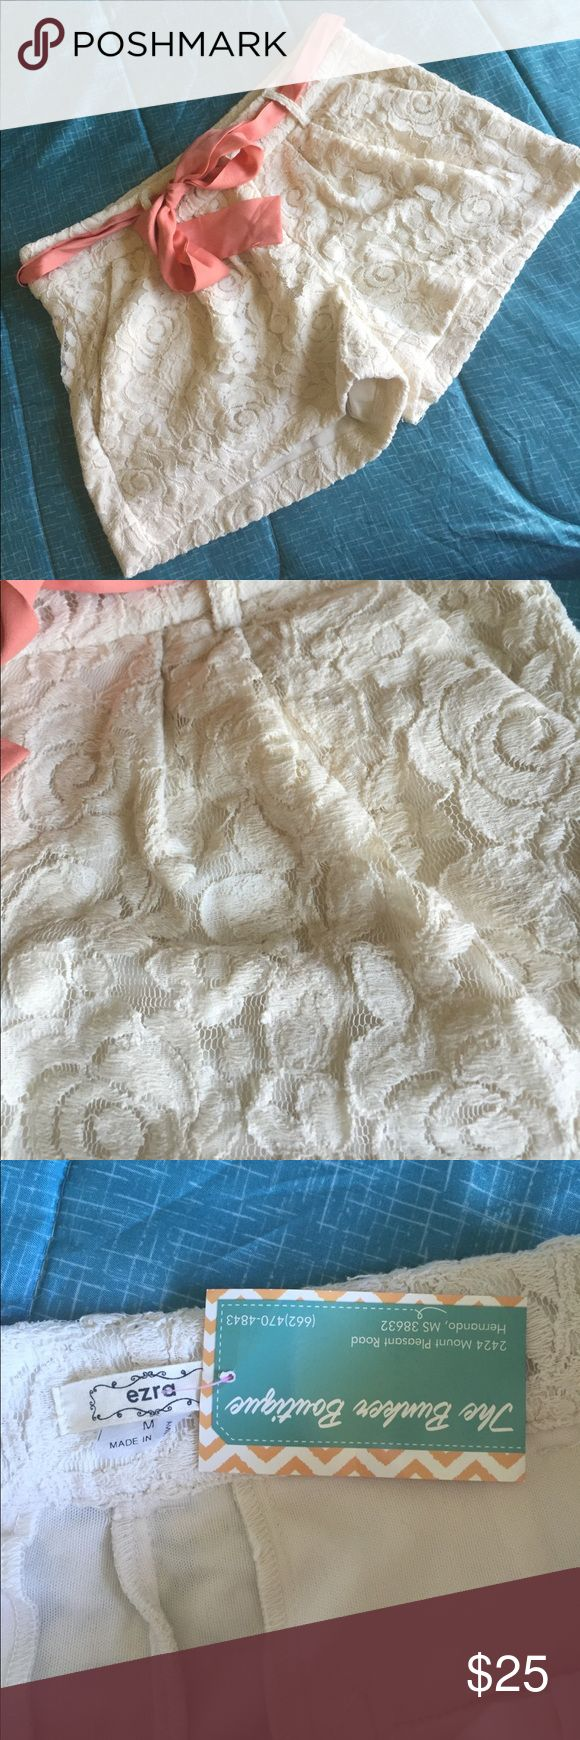 """NWT Adorable cream lace shorts So soft and chic! Cream lace shorts with a peach bow belt. NWT from local boutique. Sz Med, waist is 16"""" across when laid flat. 3"""" inseam. Shorts"""